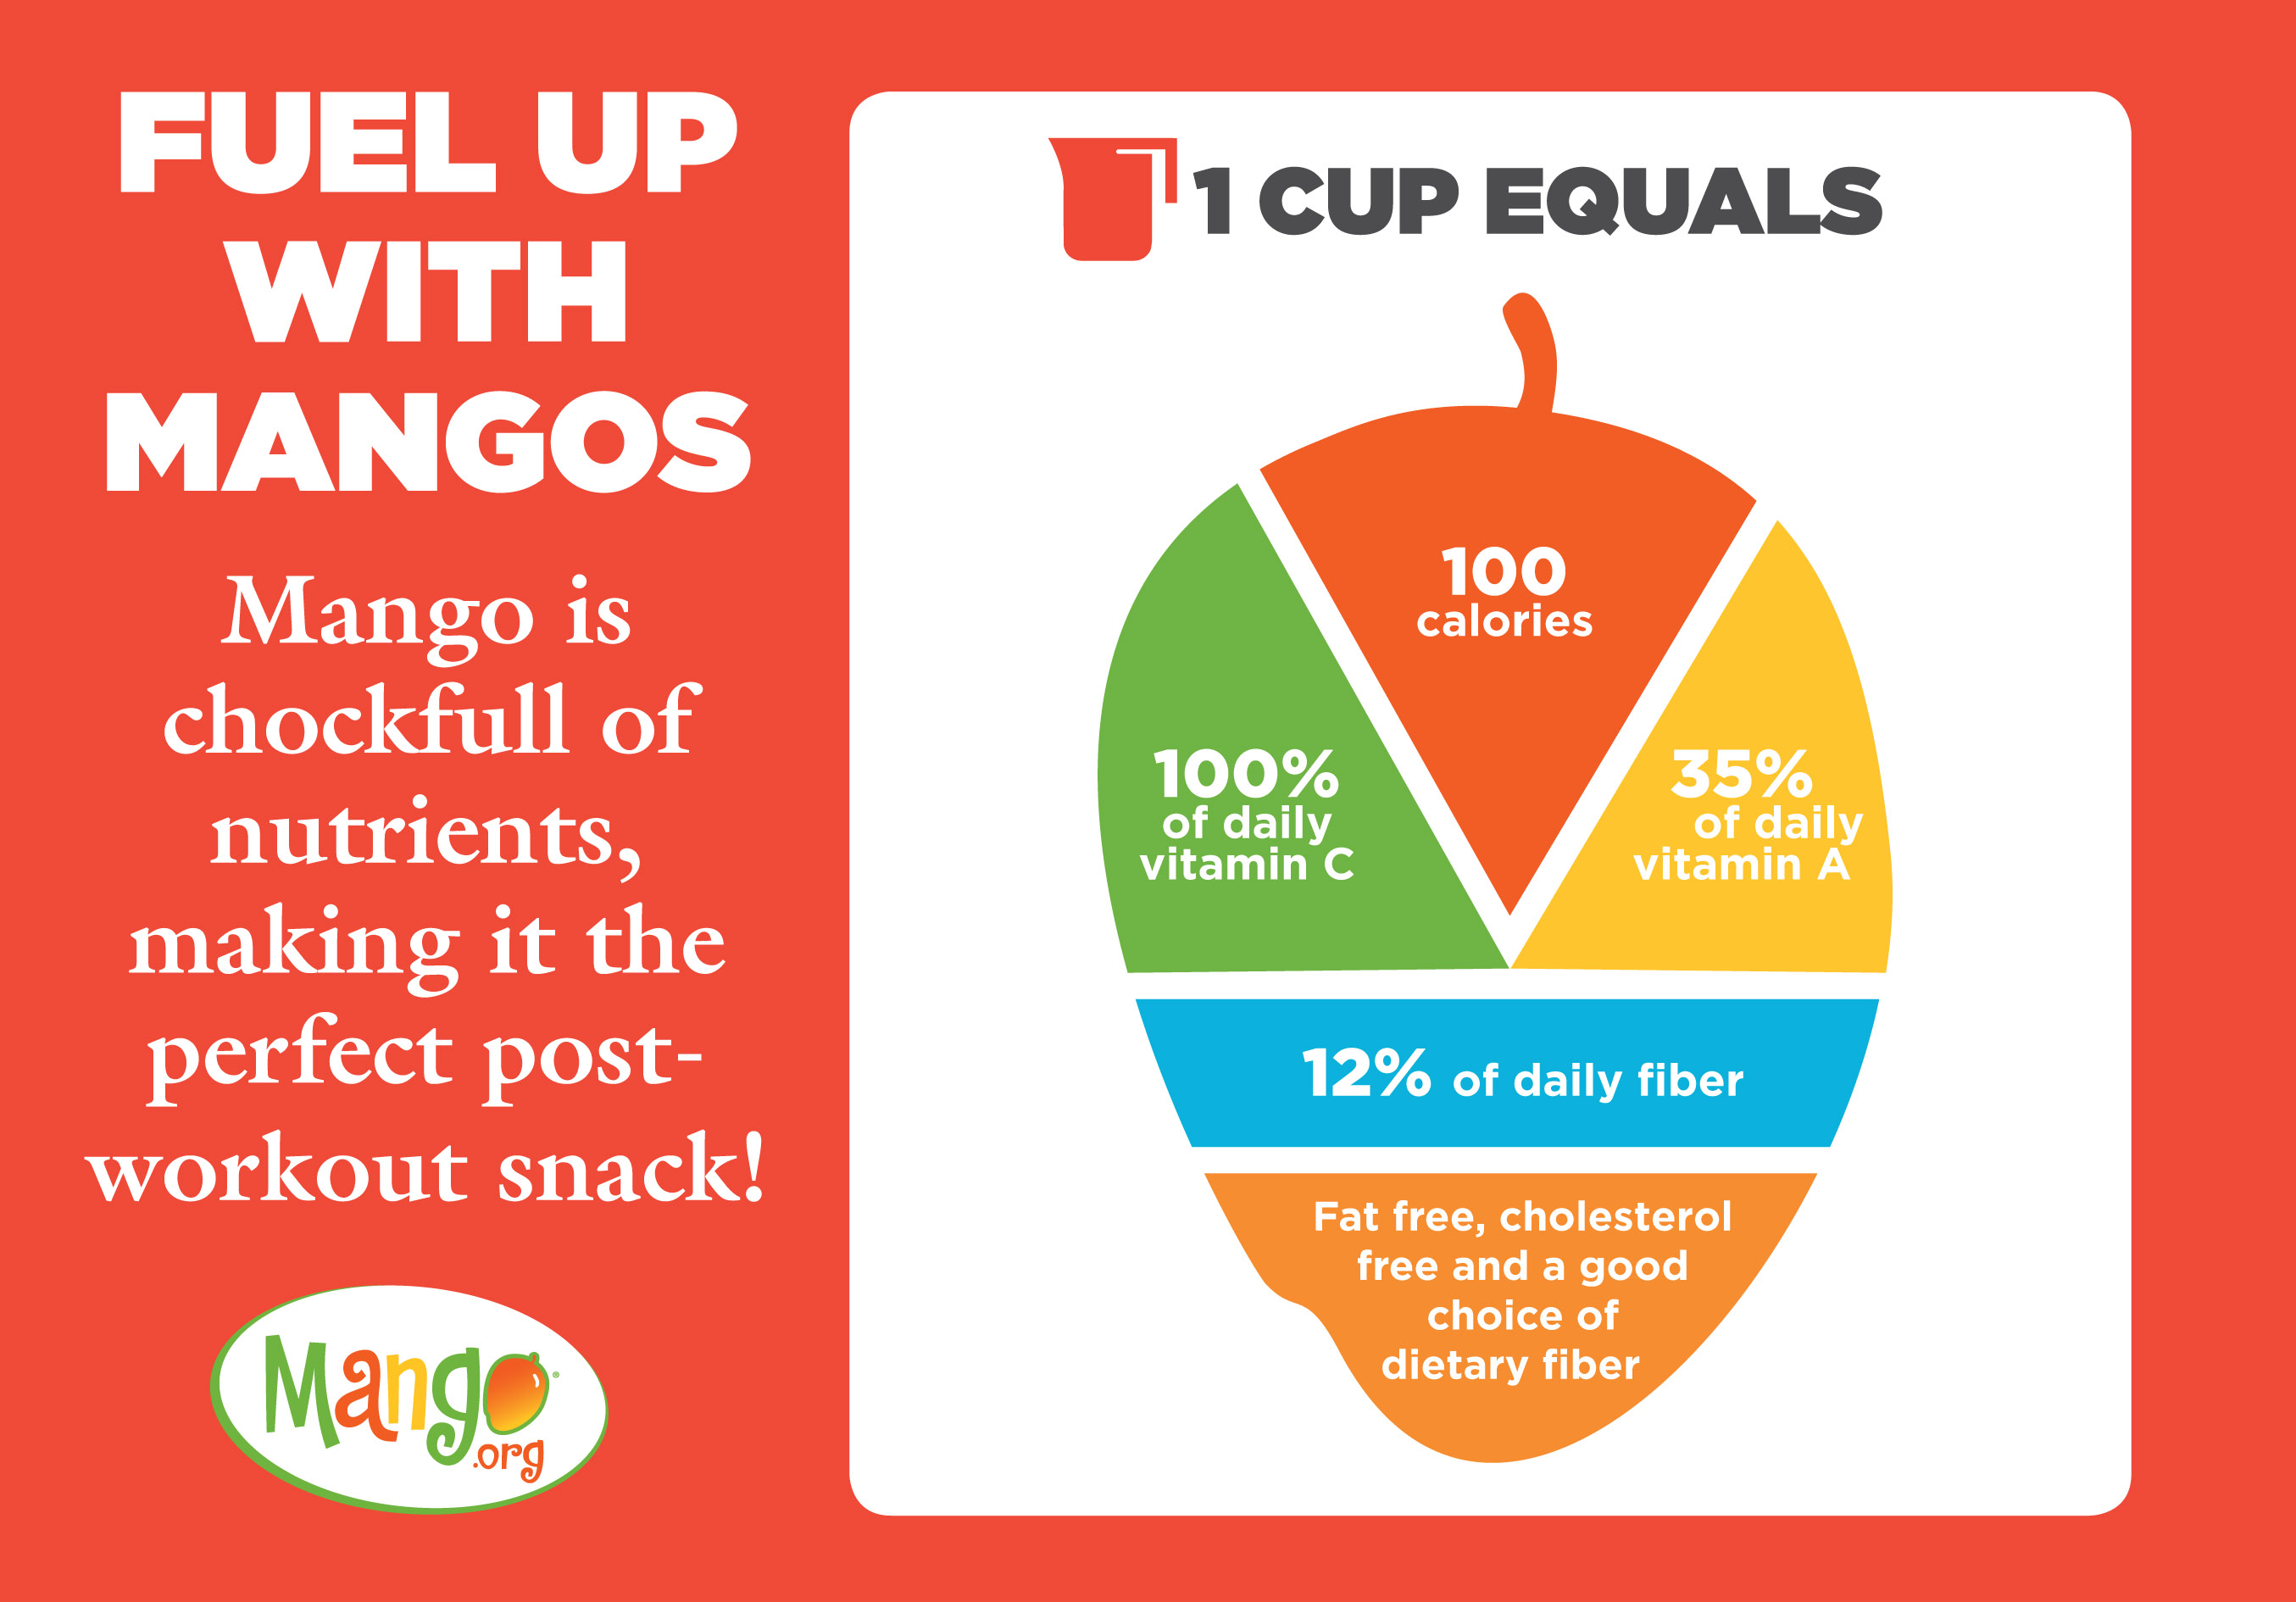 The Benefits of Mangos for Runners: Fuel Up with Mangos #mangos #fitfluential #ad